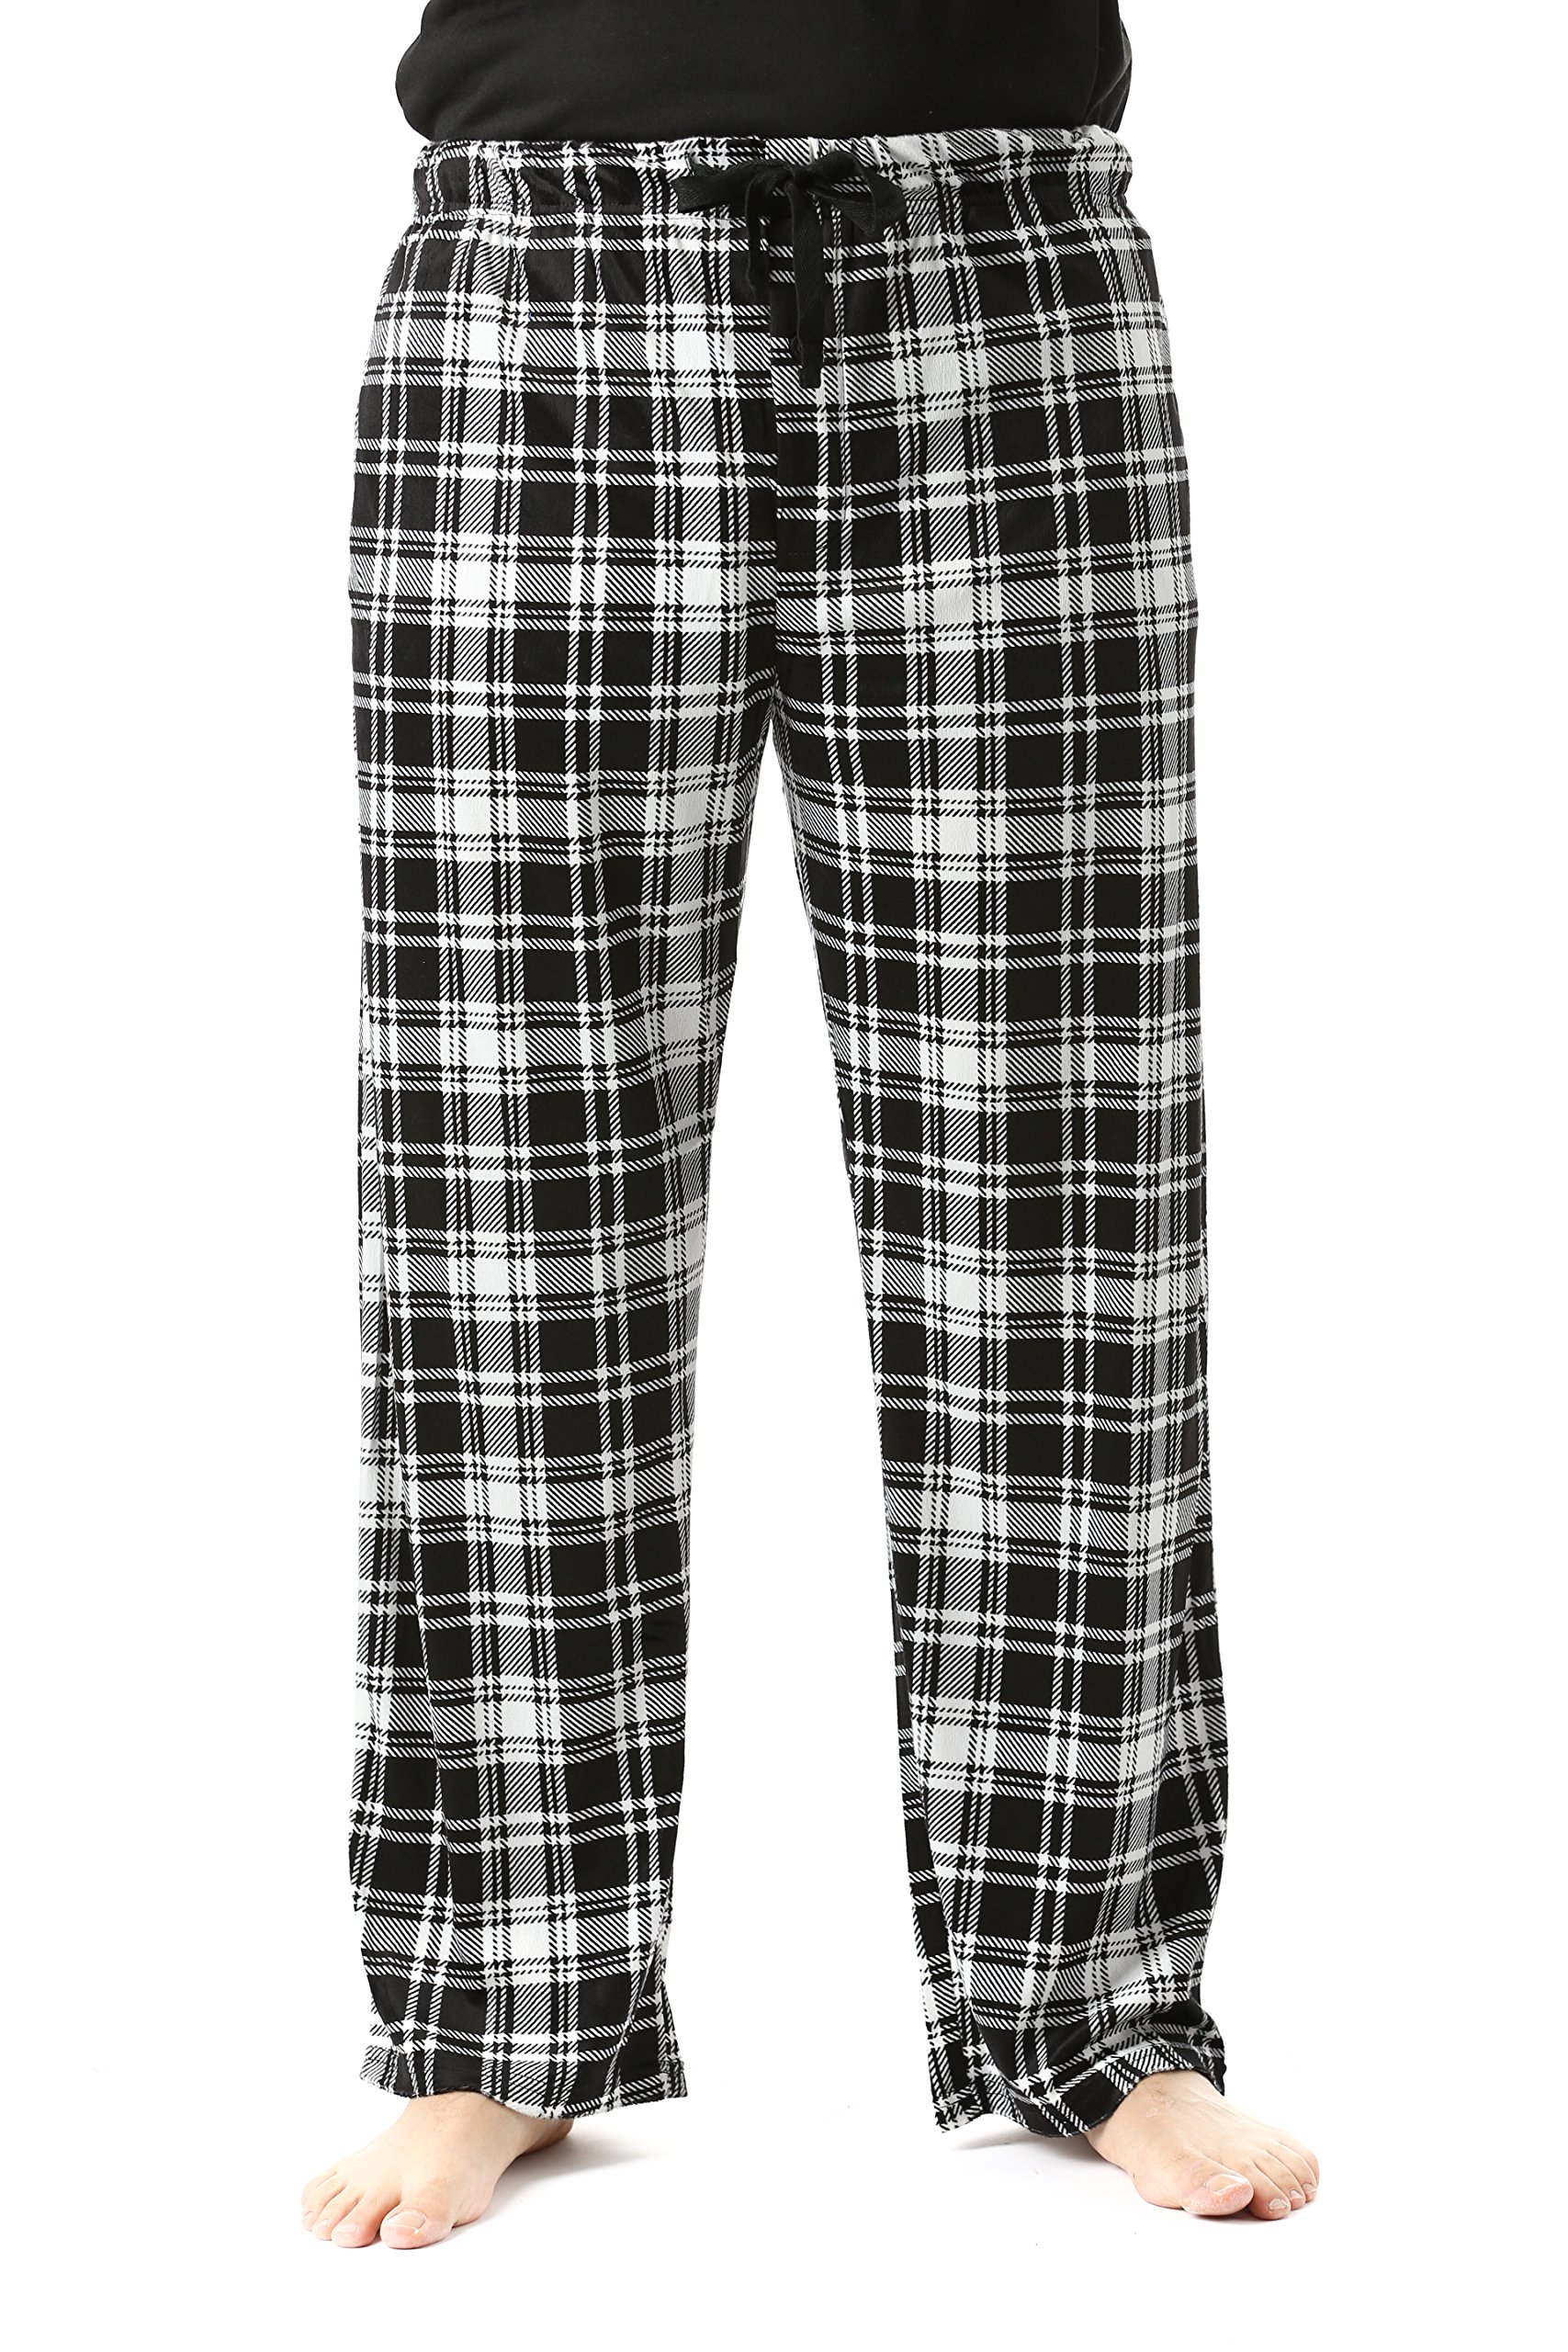 #FollowMe 45903-3A-S Fleece Pajama Pants for Men/Sleepwear/PJs,Plaid 3a,Small